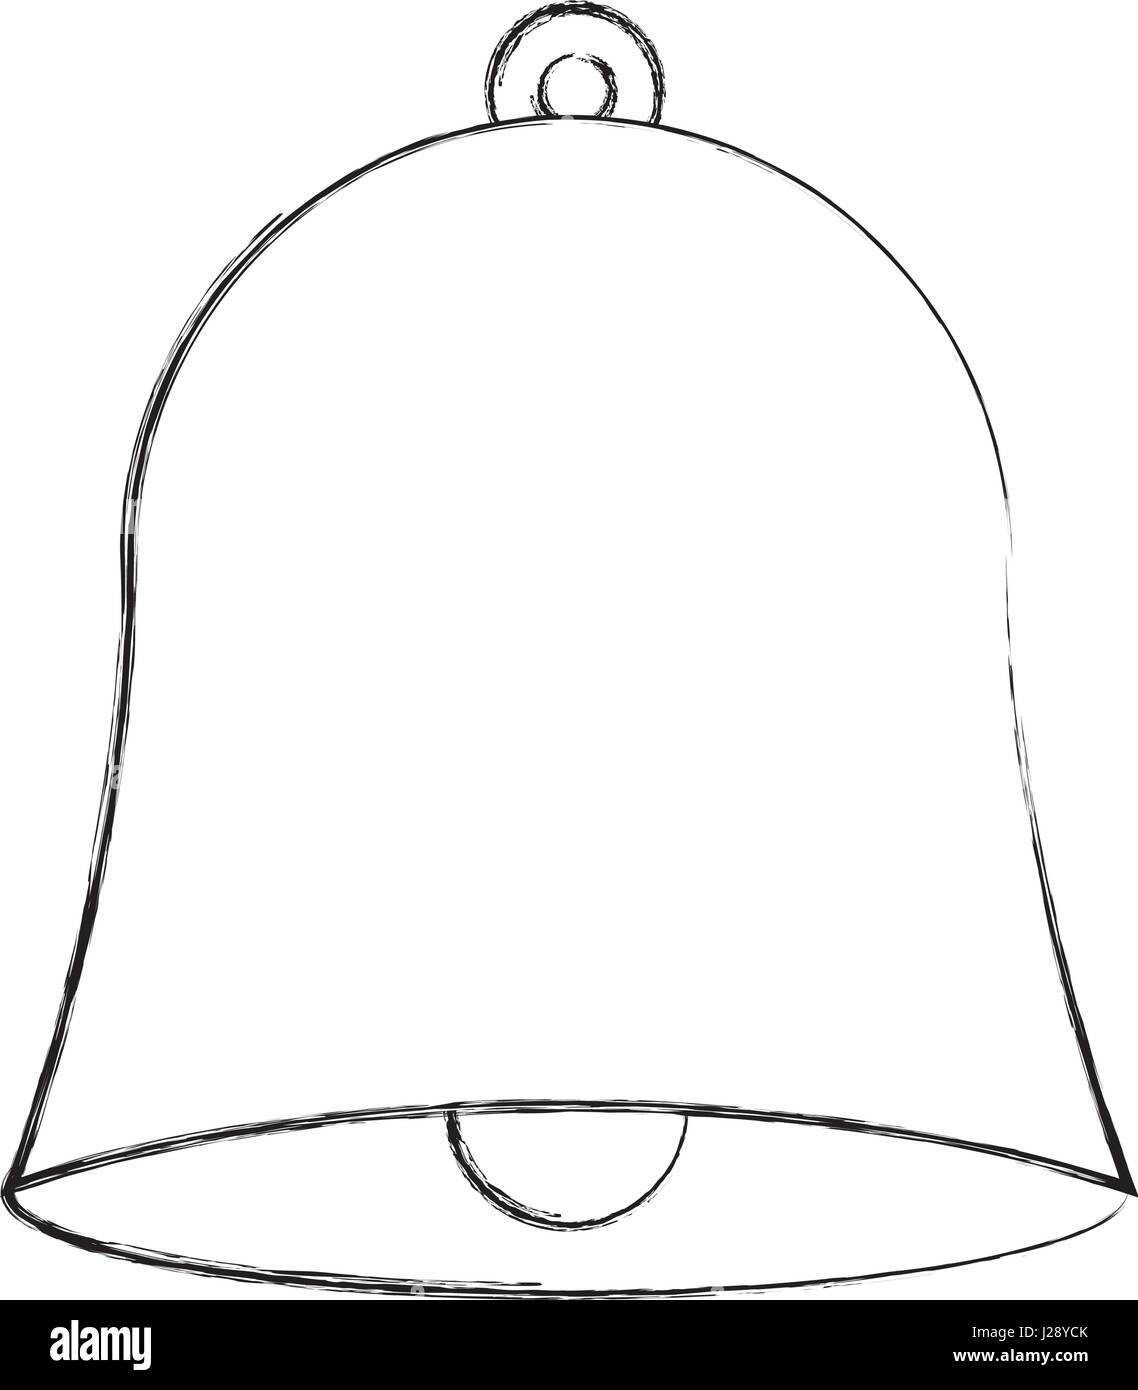 school bell isolated icon - Stock Image